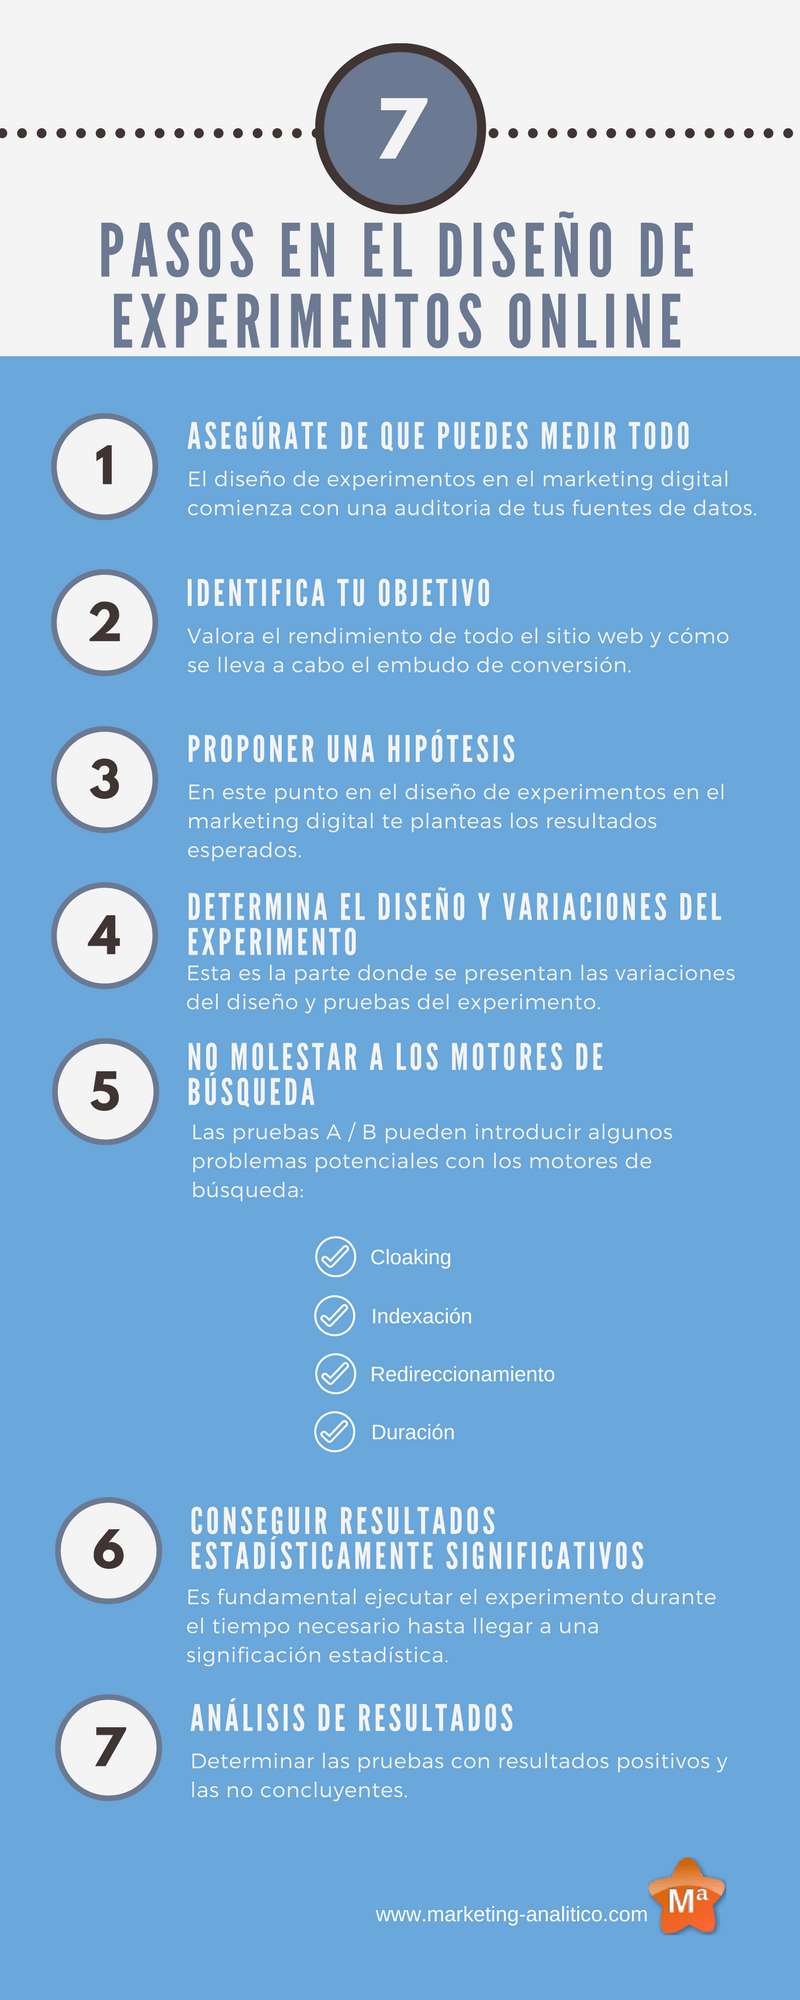 aumentar las conversiones - experimentos en el marketing digital